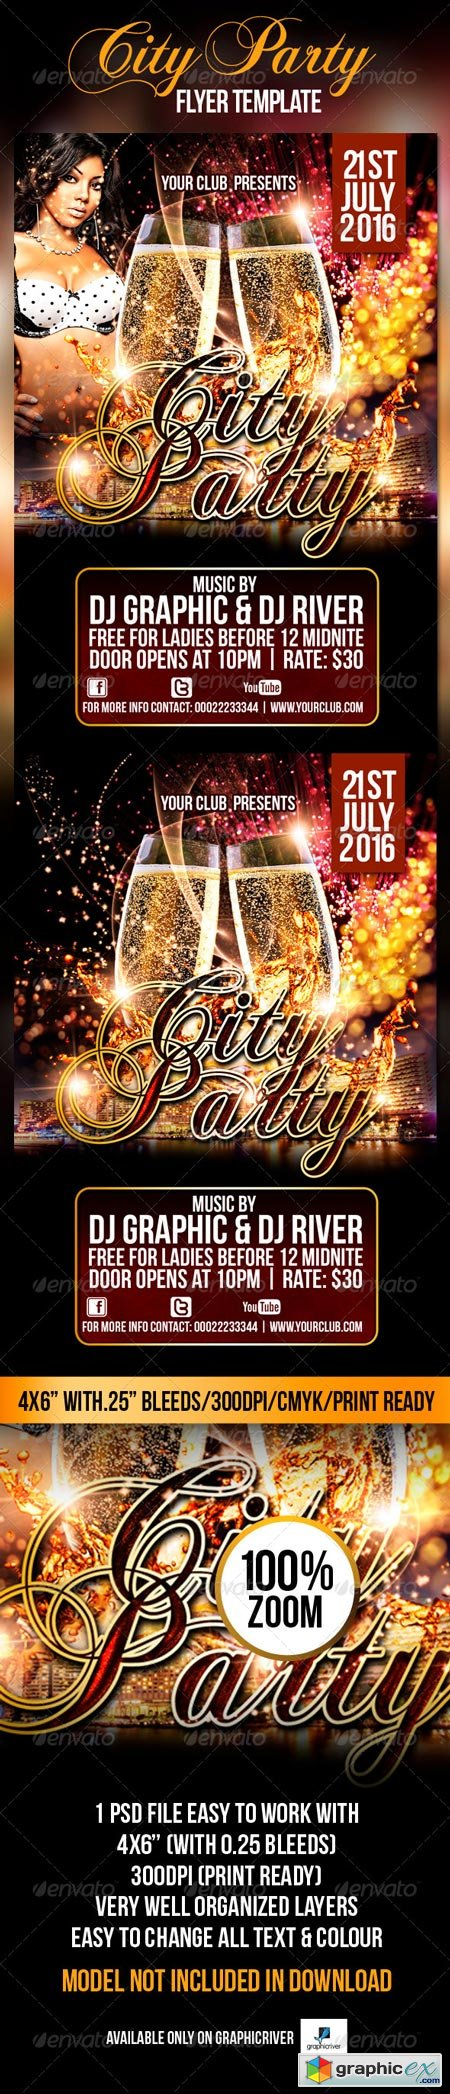 City Party Flyer Template 4344423